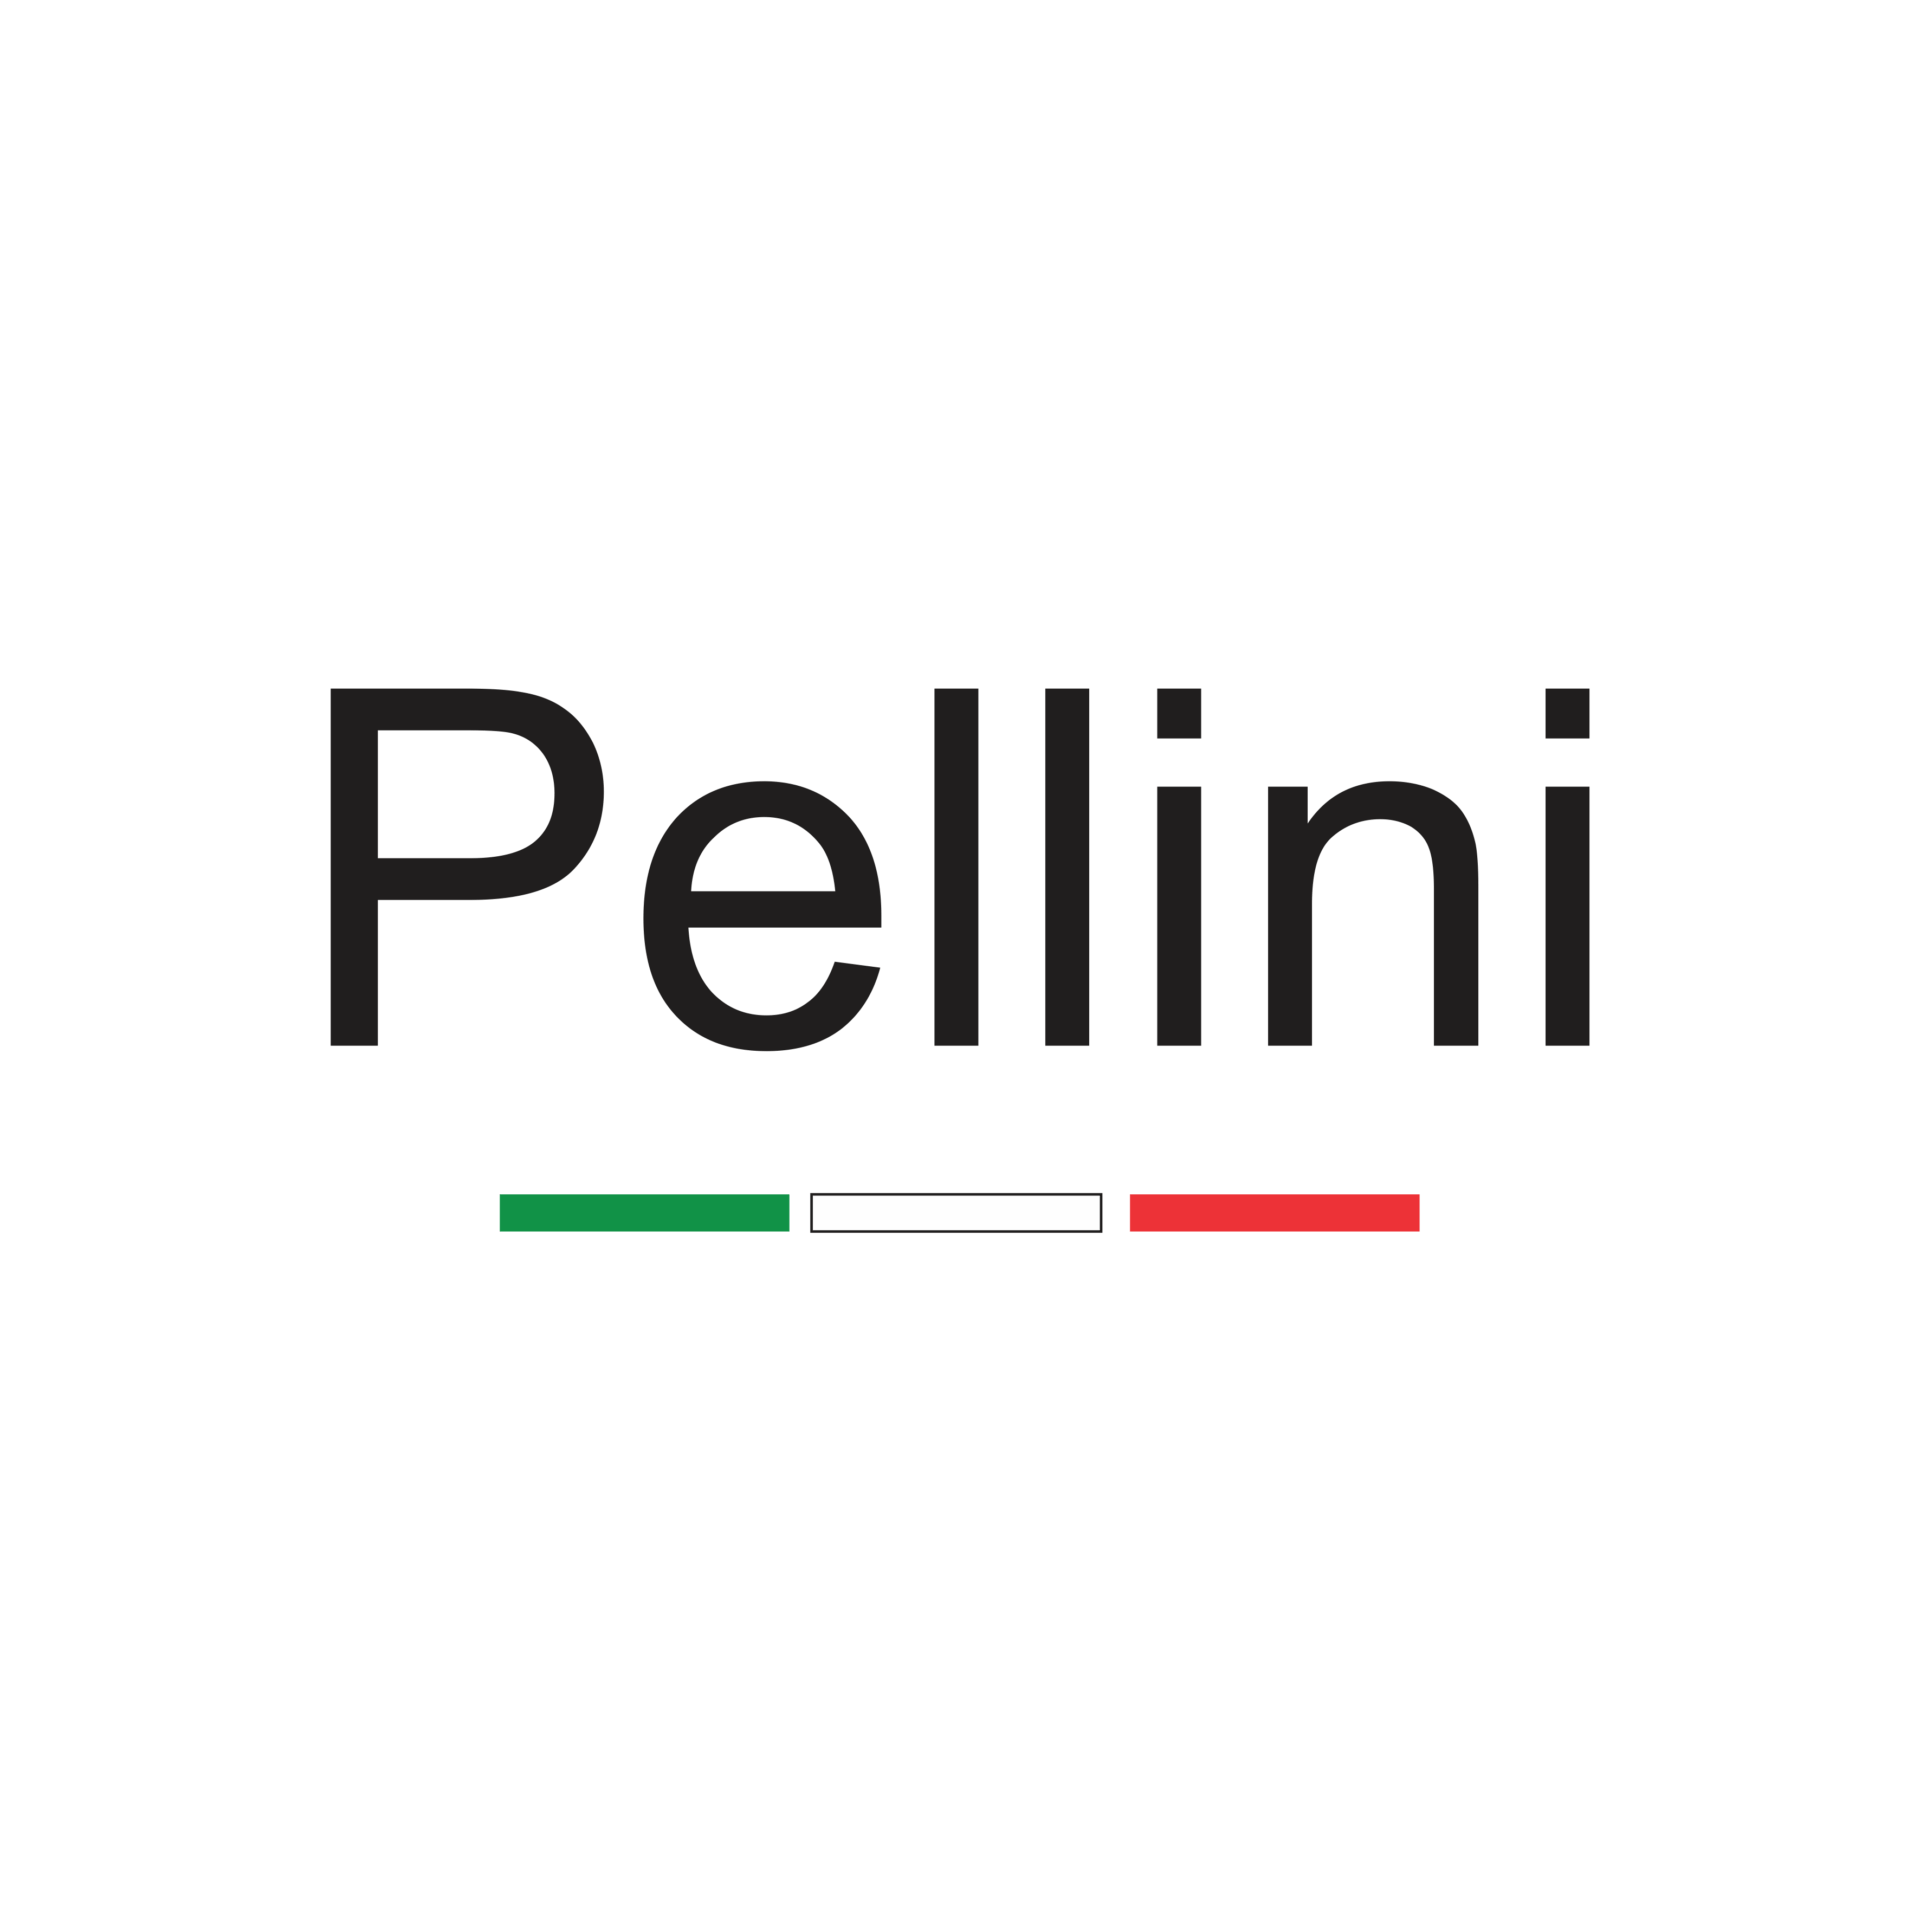 pellini : Brand Short Description Type Here.